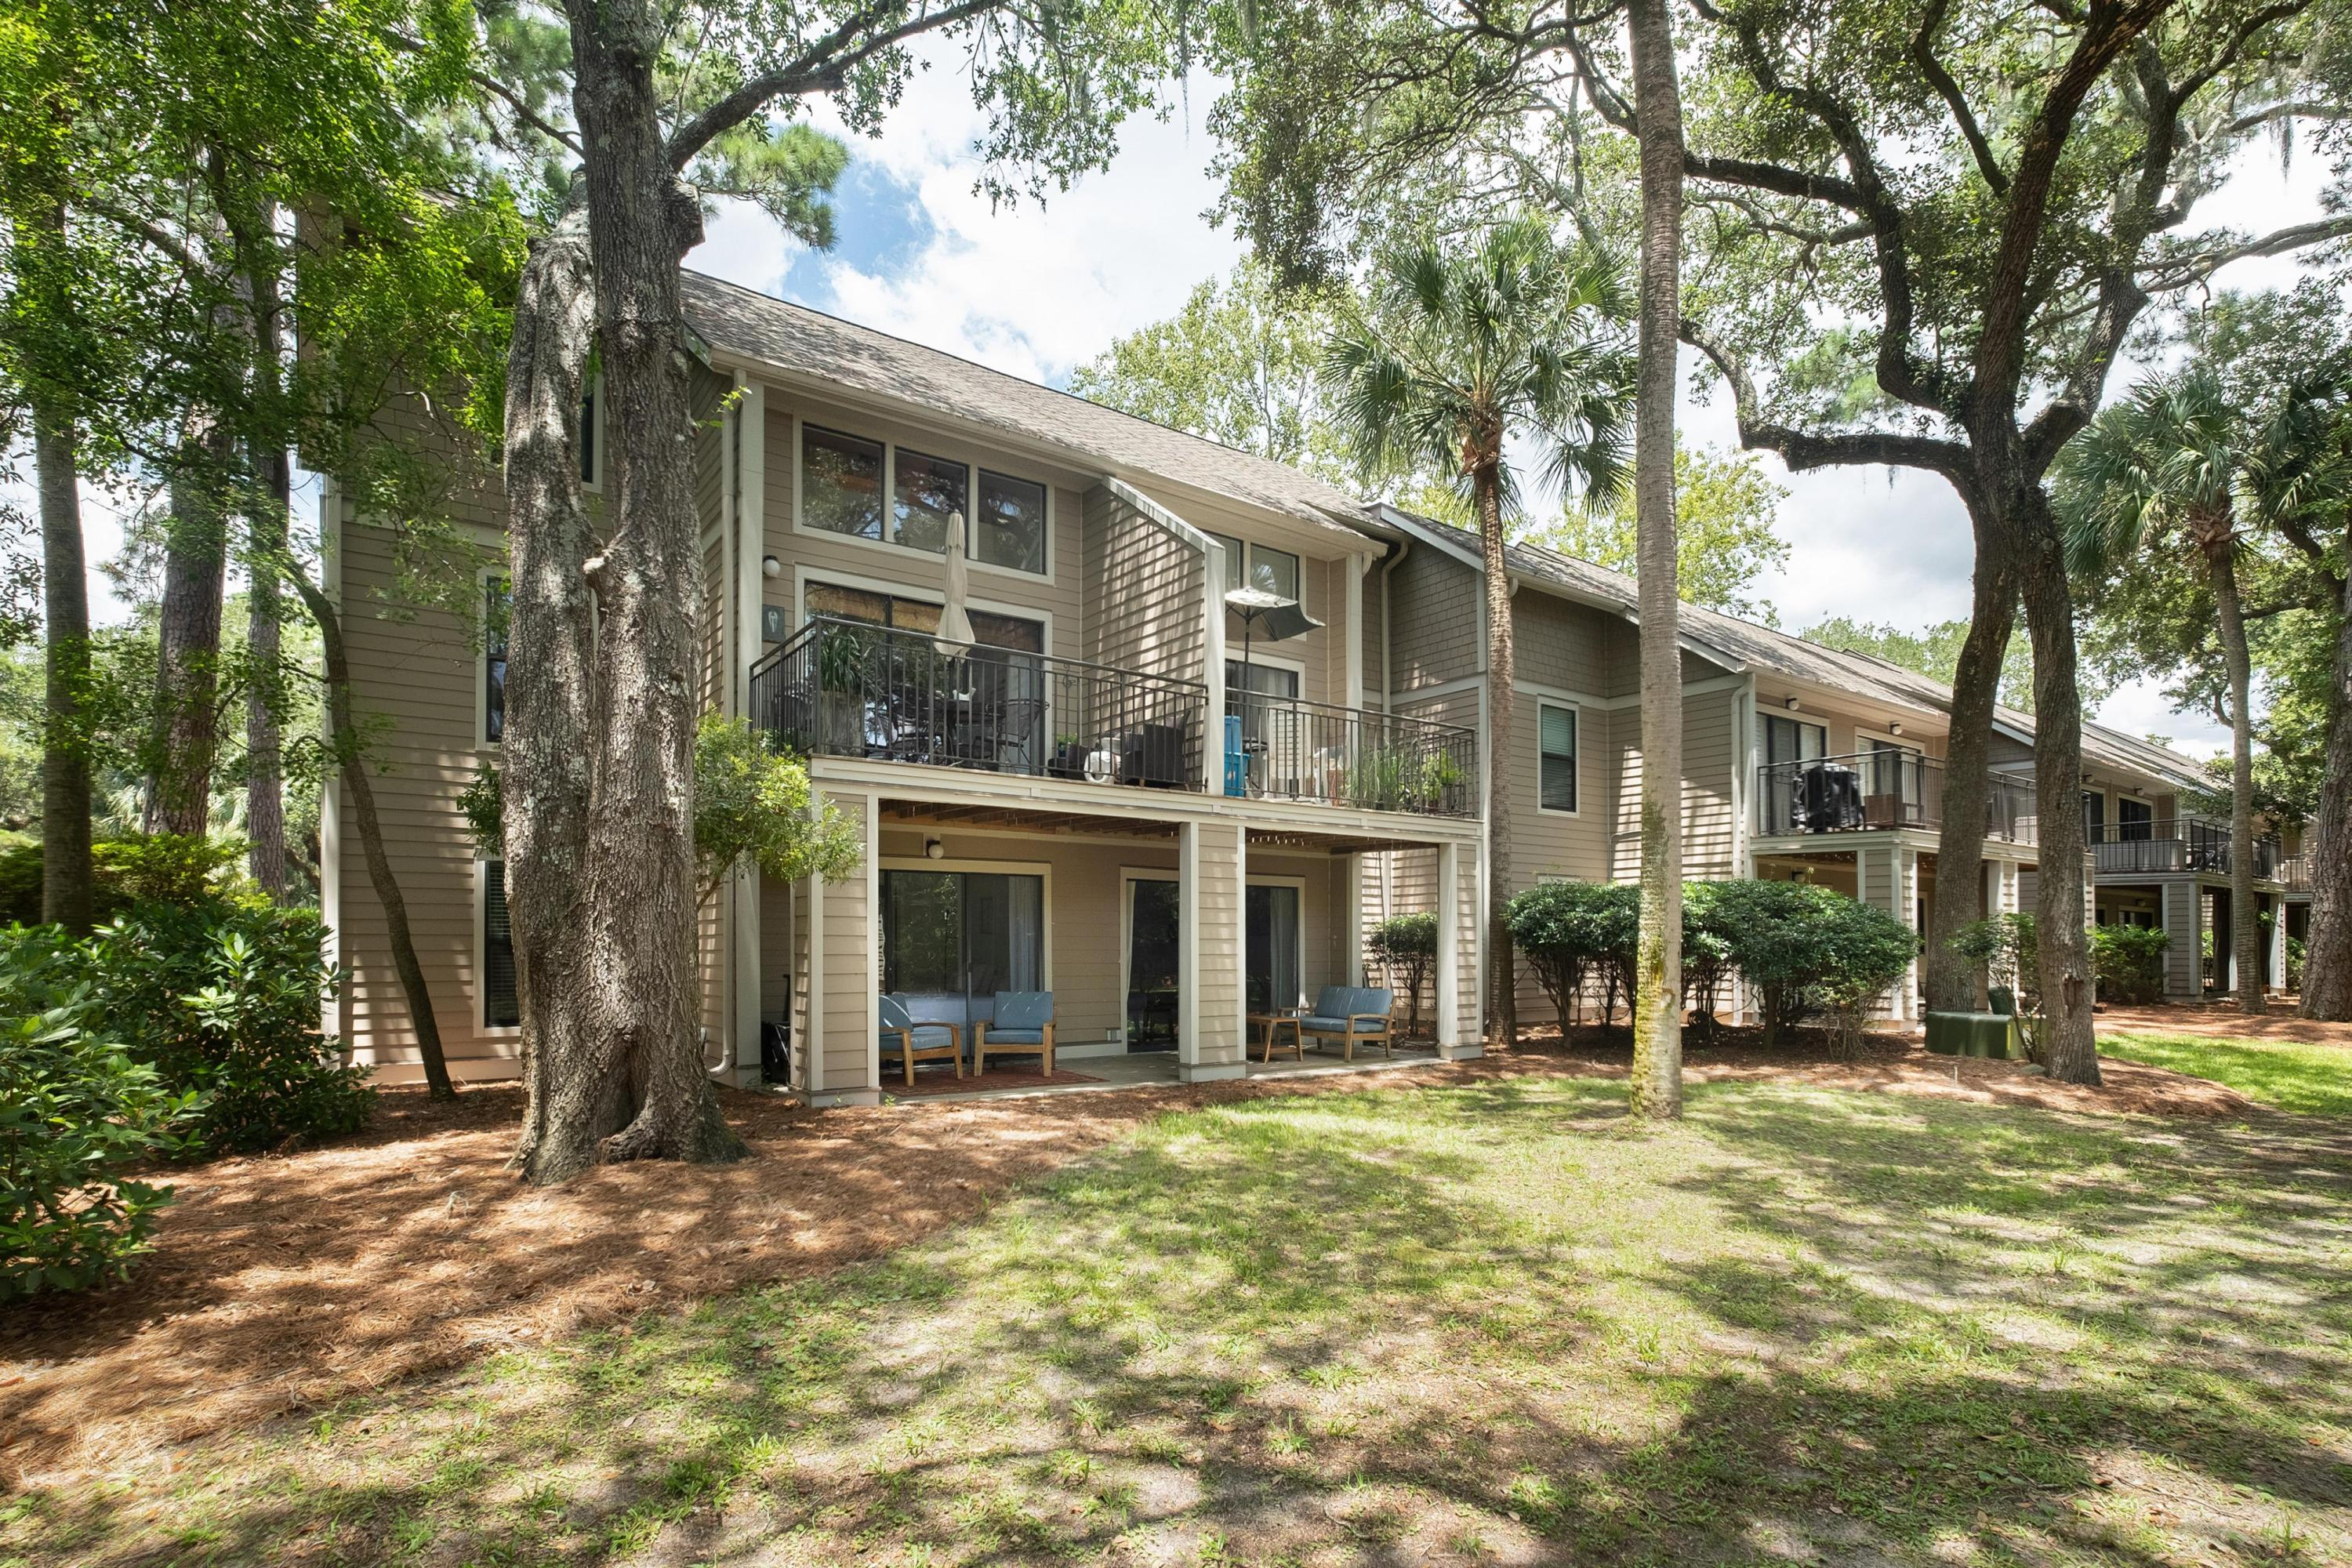 Seabrook Island Condos For Sale - 162 High Hammock Villas, Johns Island, SC - 7